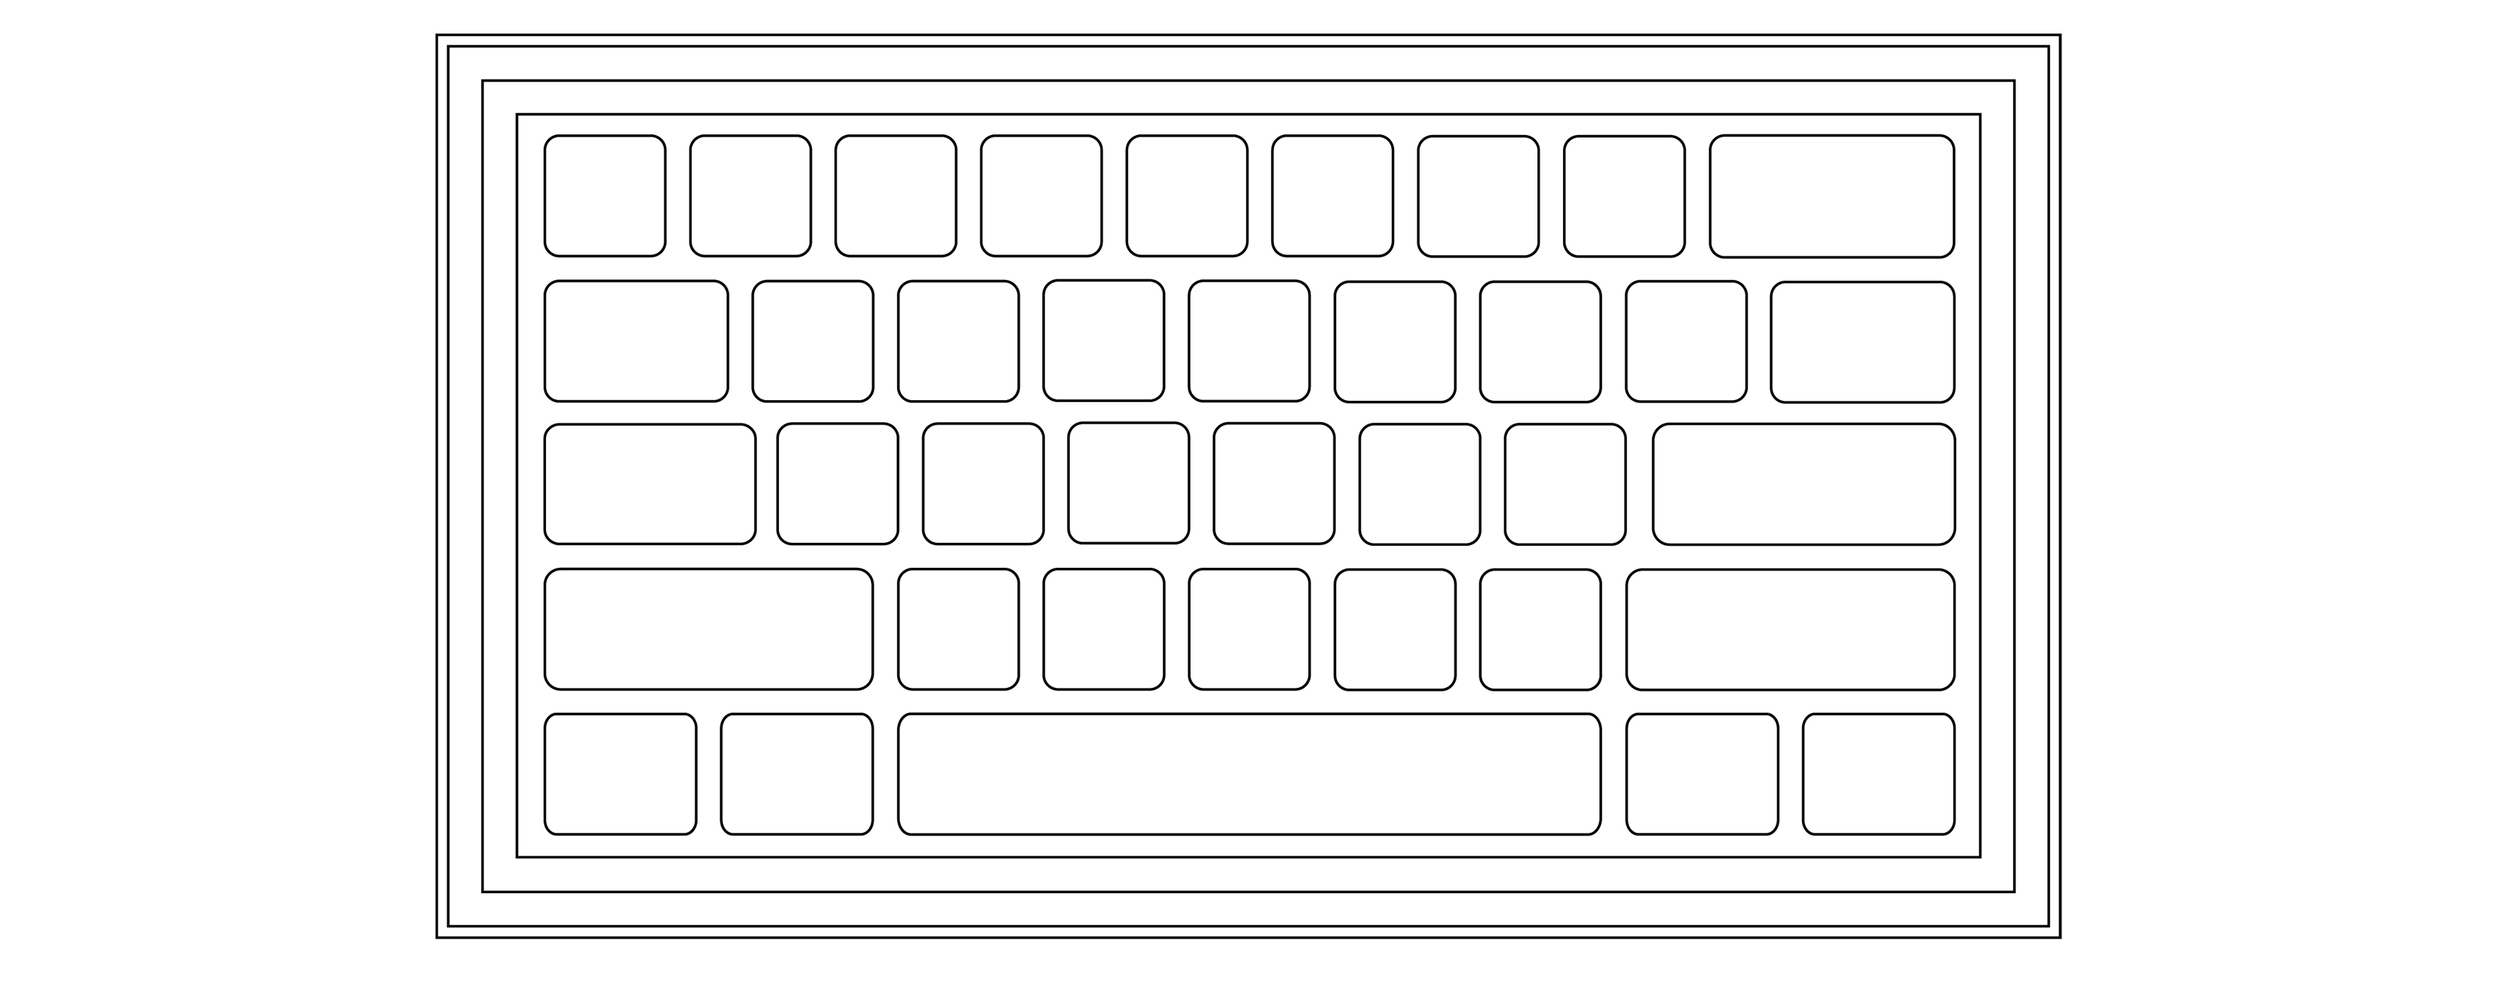 The old keyboard waffle pattern.